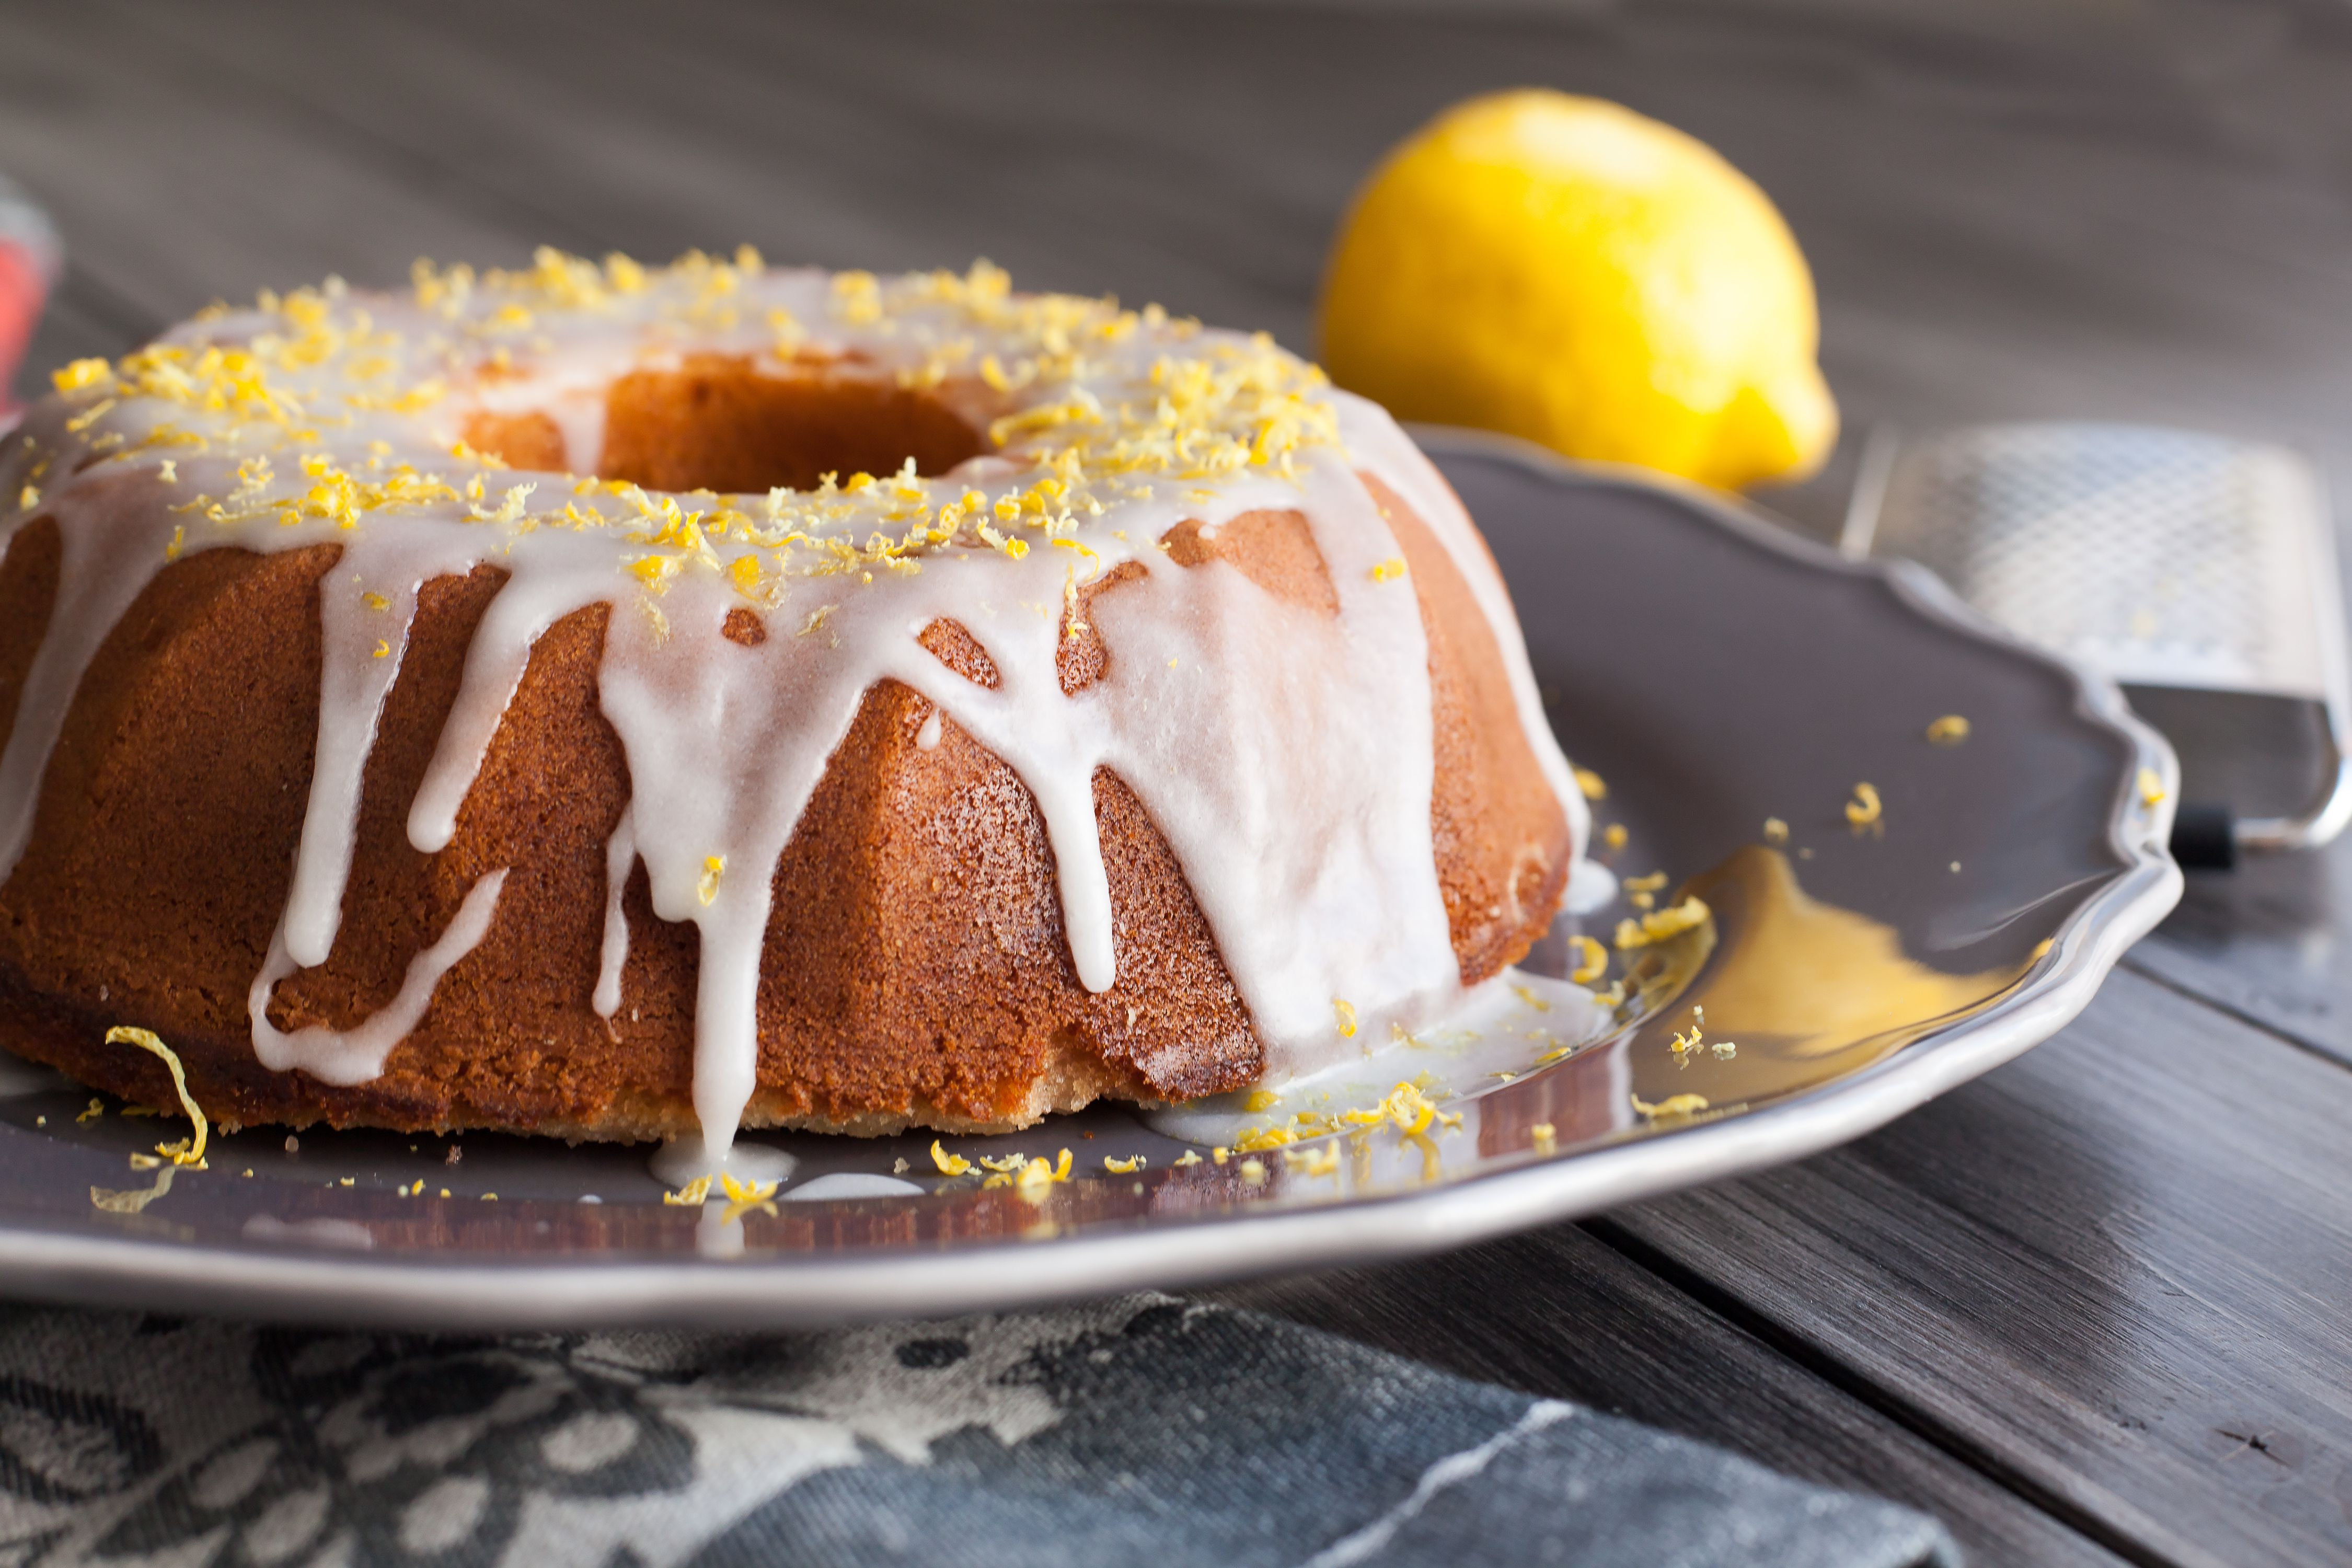 Lemon Bundt Cake With Glaze Recipe